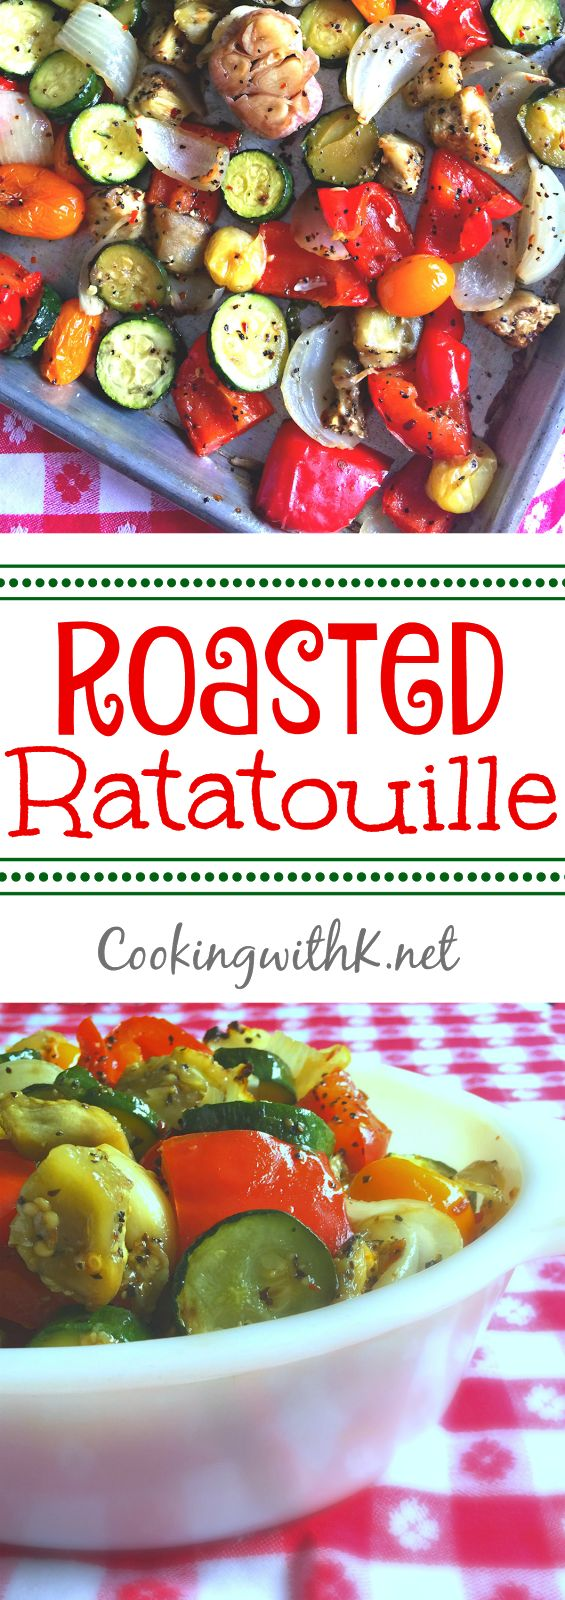 Roasted Ratatouille Vegetables, roasted summer vegetables, eggplant, bell pepper, zucchini, and onion with a whole garlic into a delightful side dish.  The recipe is healthy and comforting at the same time--pure deliciousness!